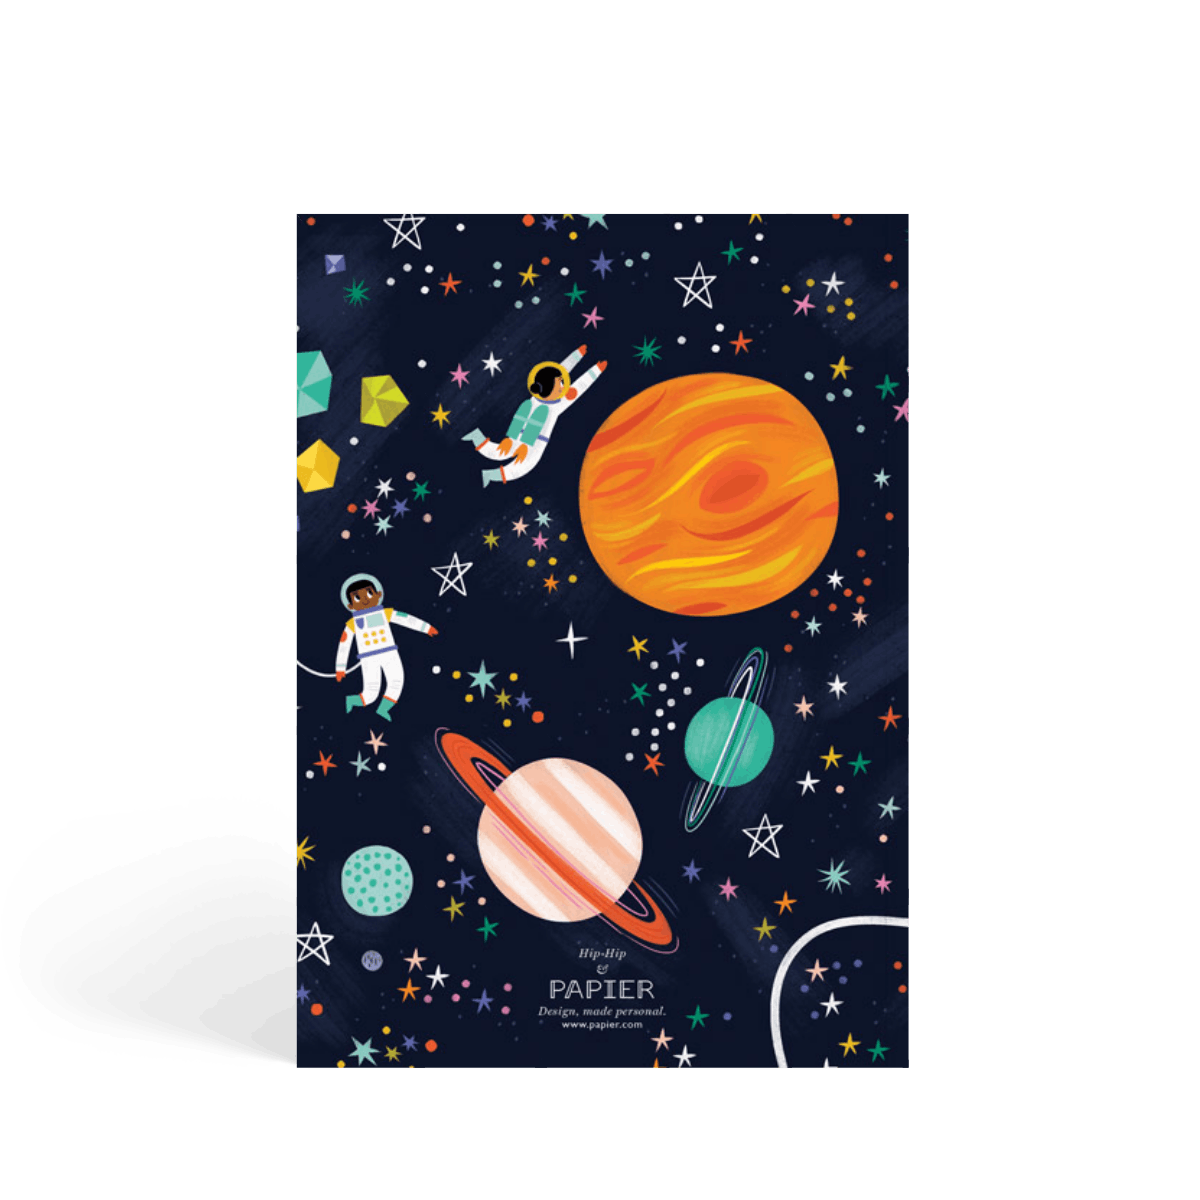 Https%3a%2f%2fwww.papier.com%2fproduct image%2f31543%2f5%2fastronaut girl i 7921 back 1511375521.png?ixlib=rb 1.1